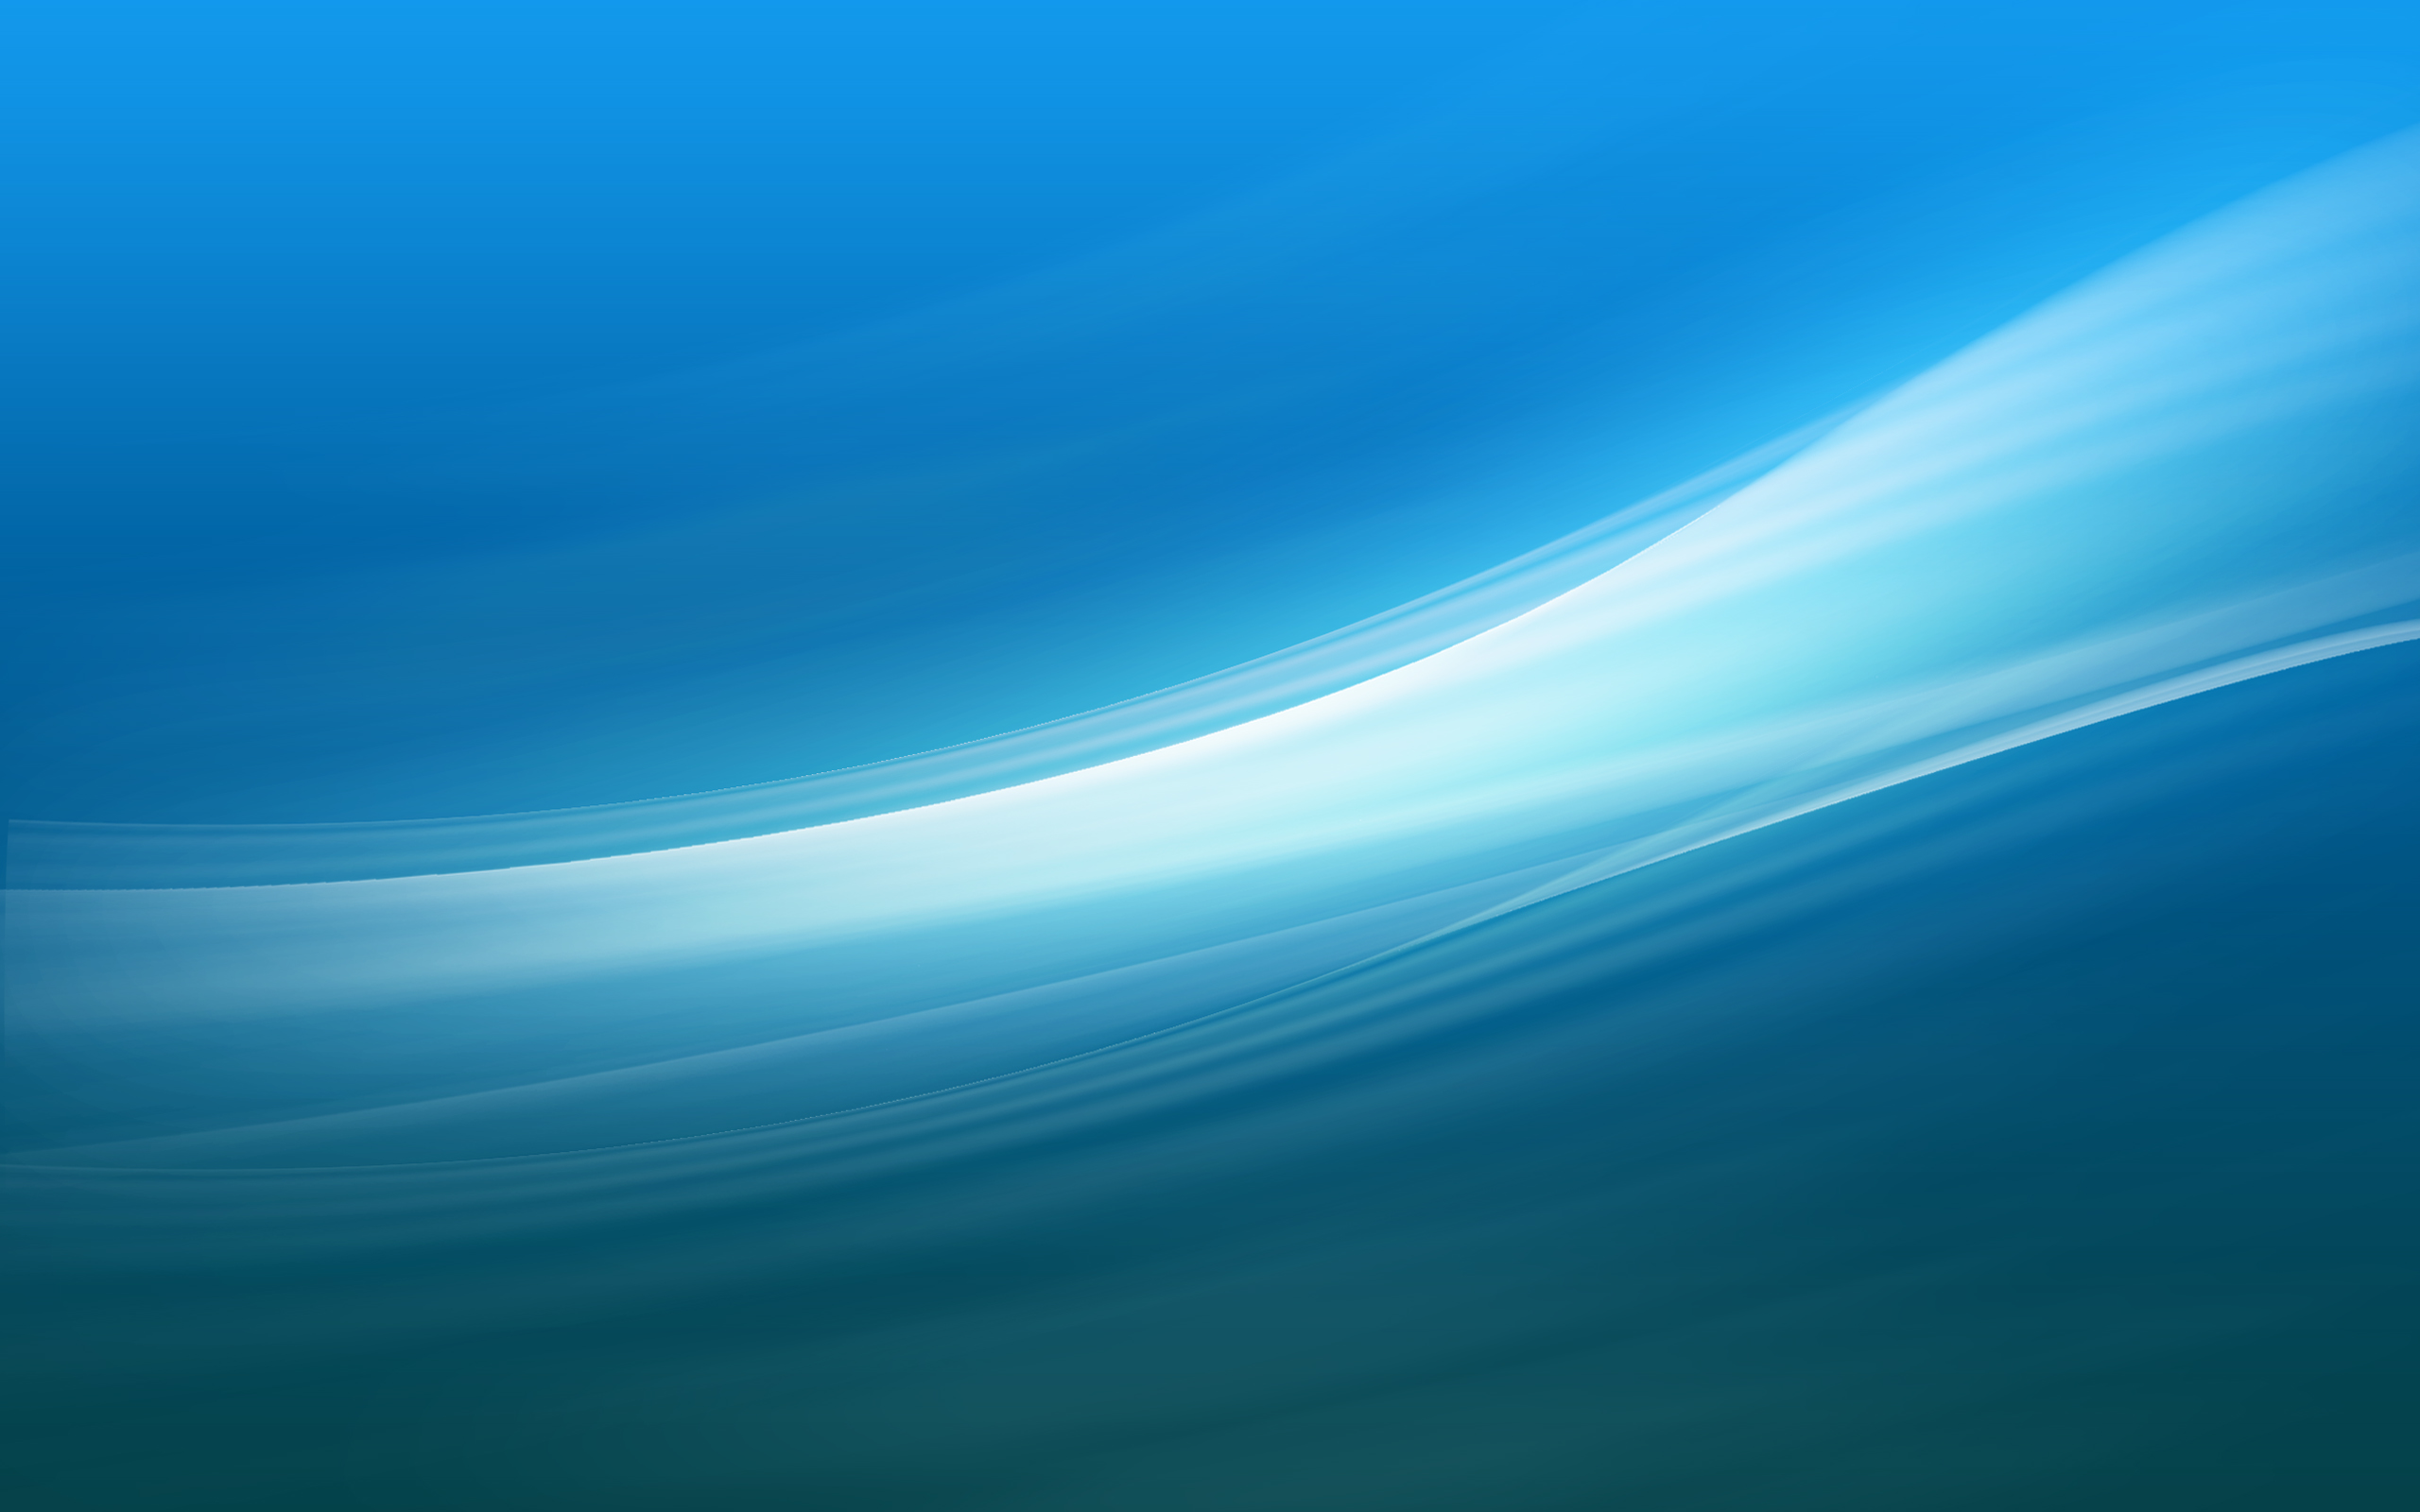 2560x1600 blue digital waves desktop pc and mac wallpaper